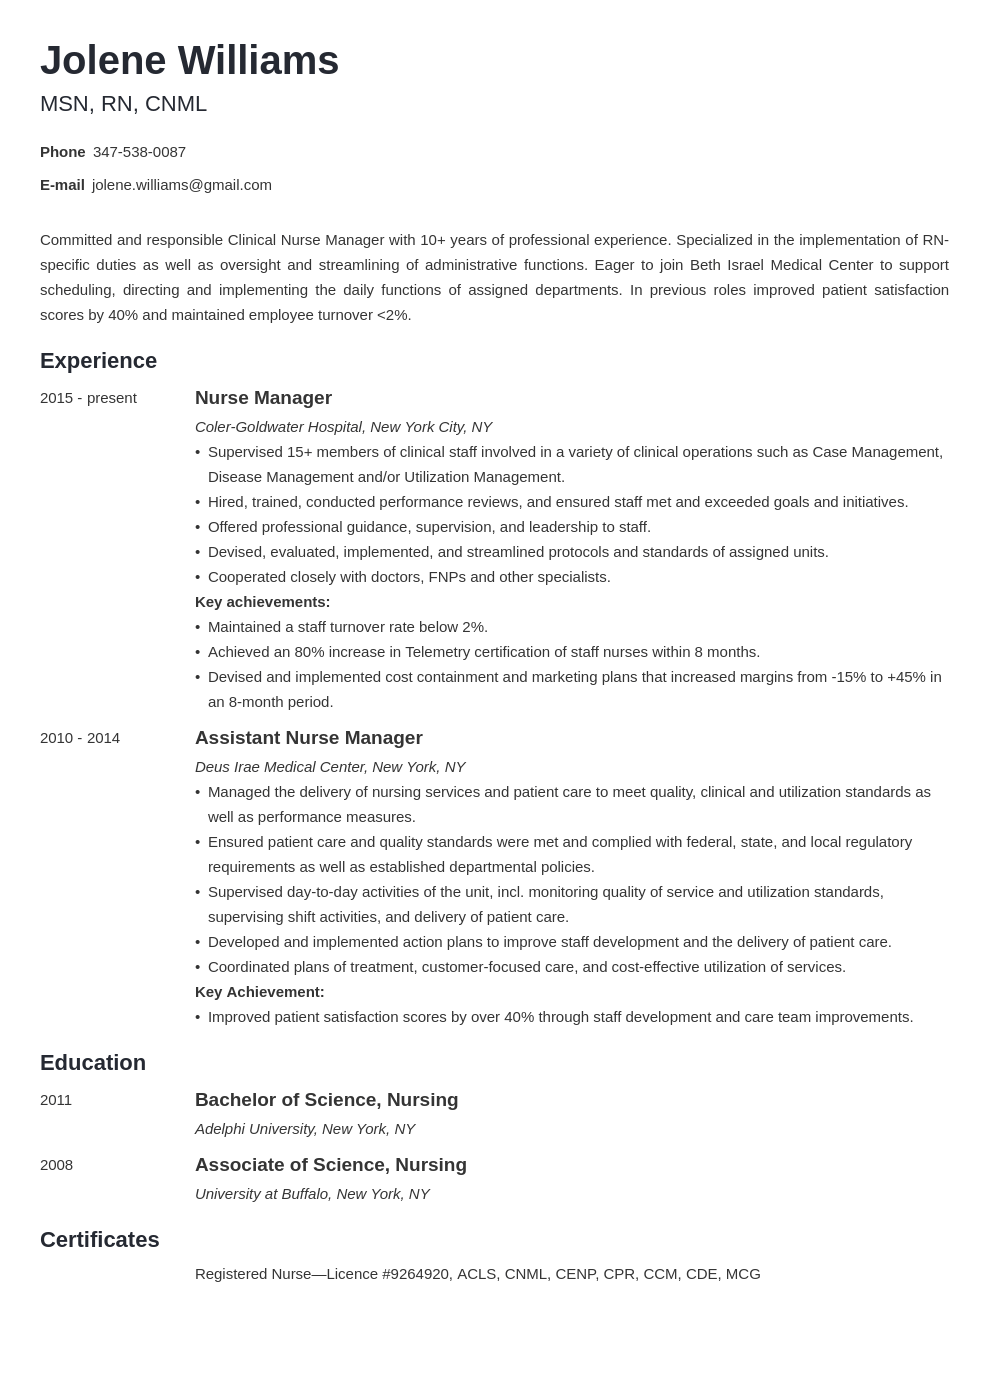 nurse manager resume example template minimo in 2020